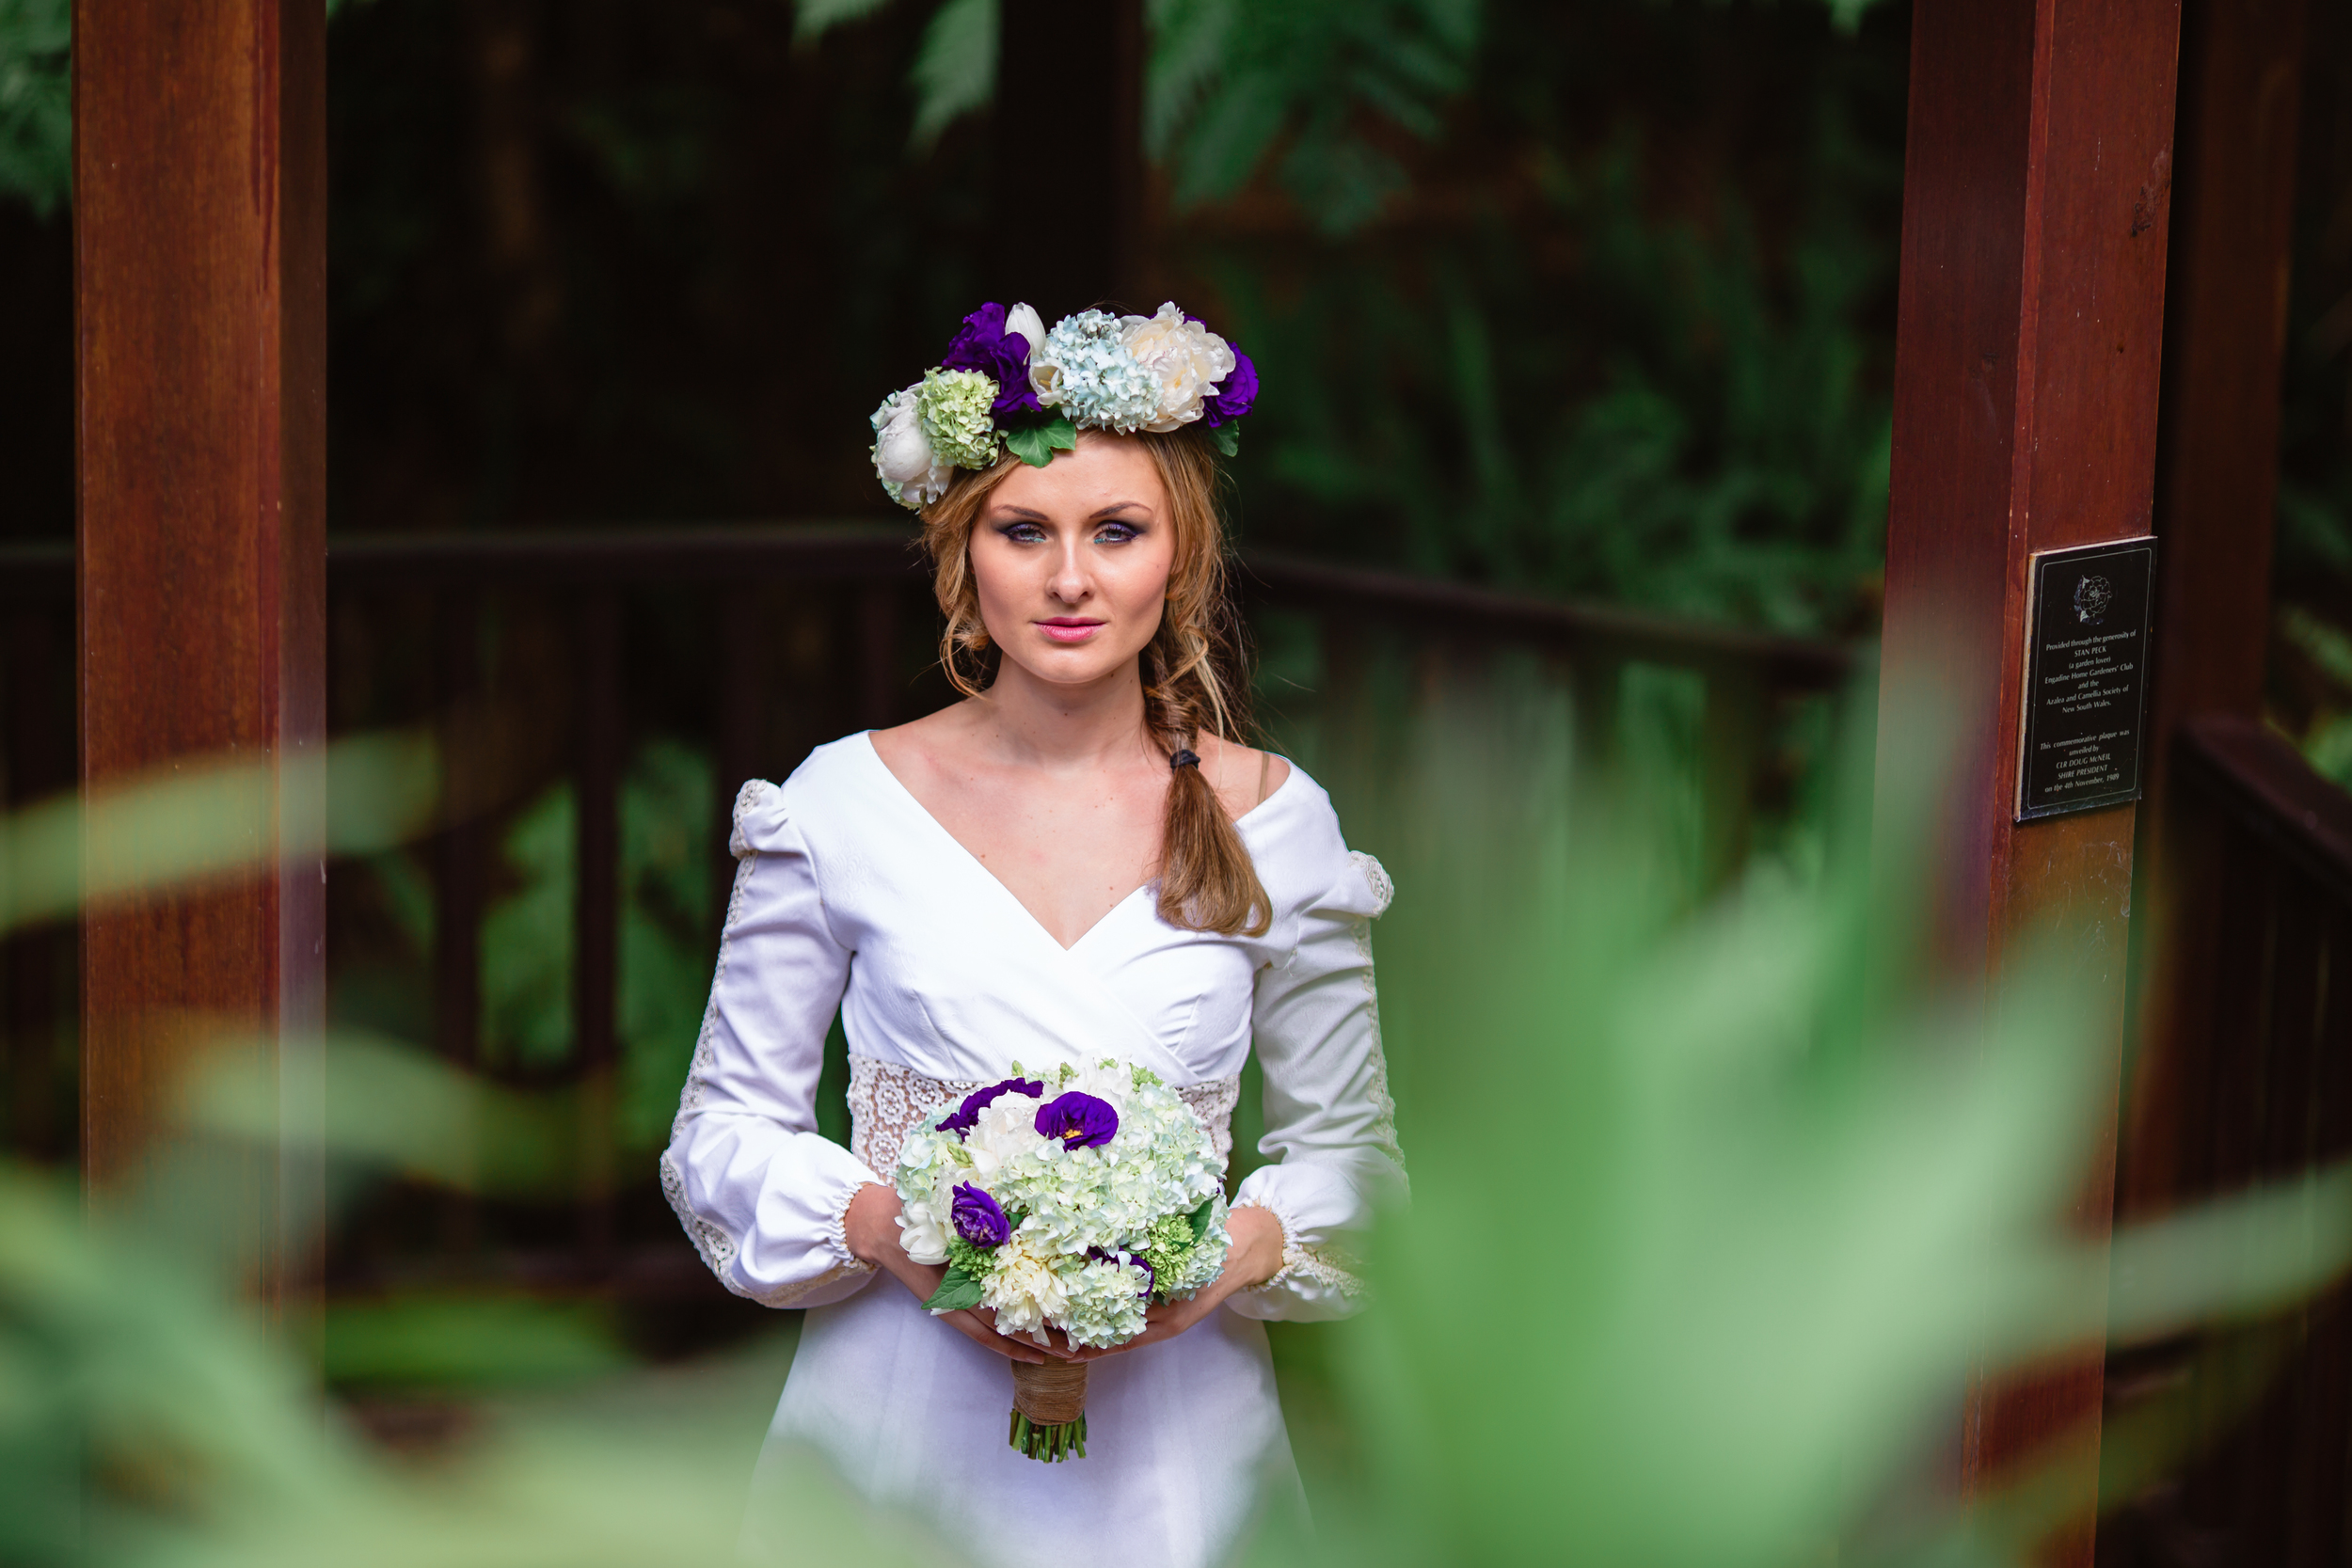 Garden Wedding - Floral Crown and bridal bouquet 8.jpg